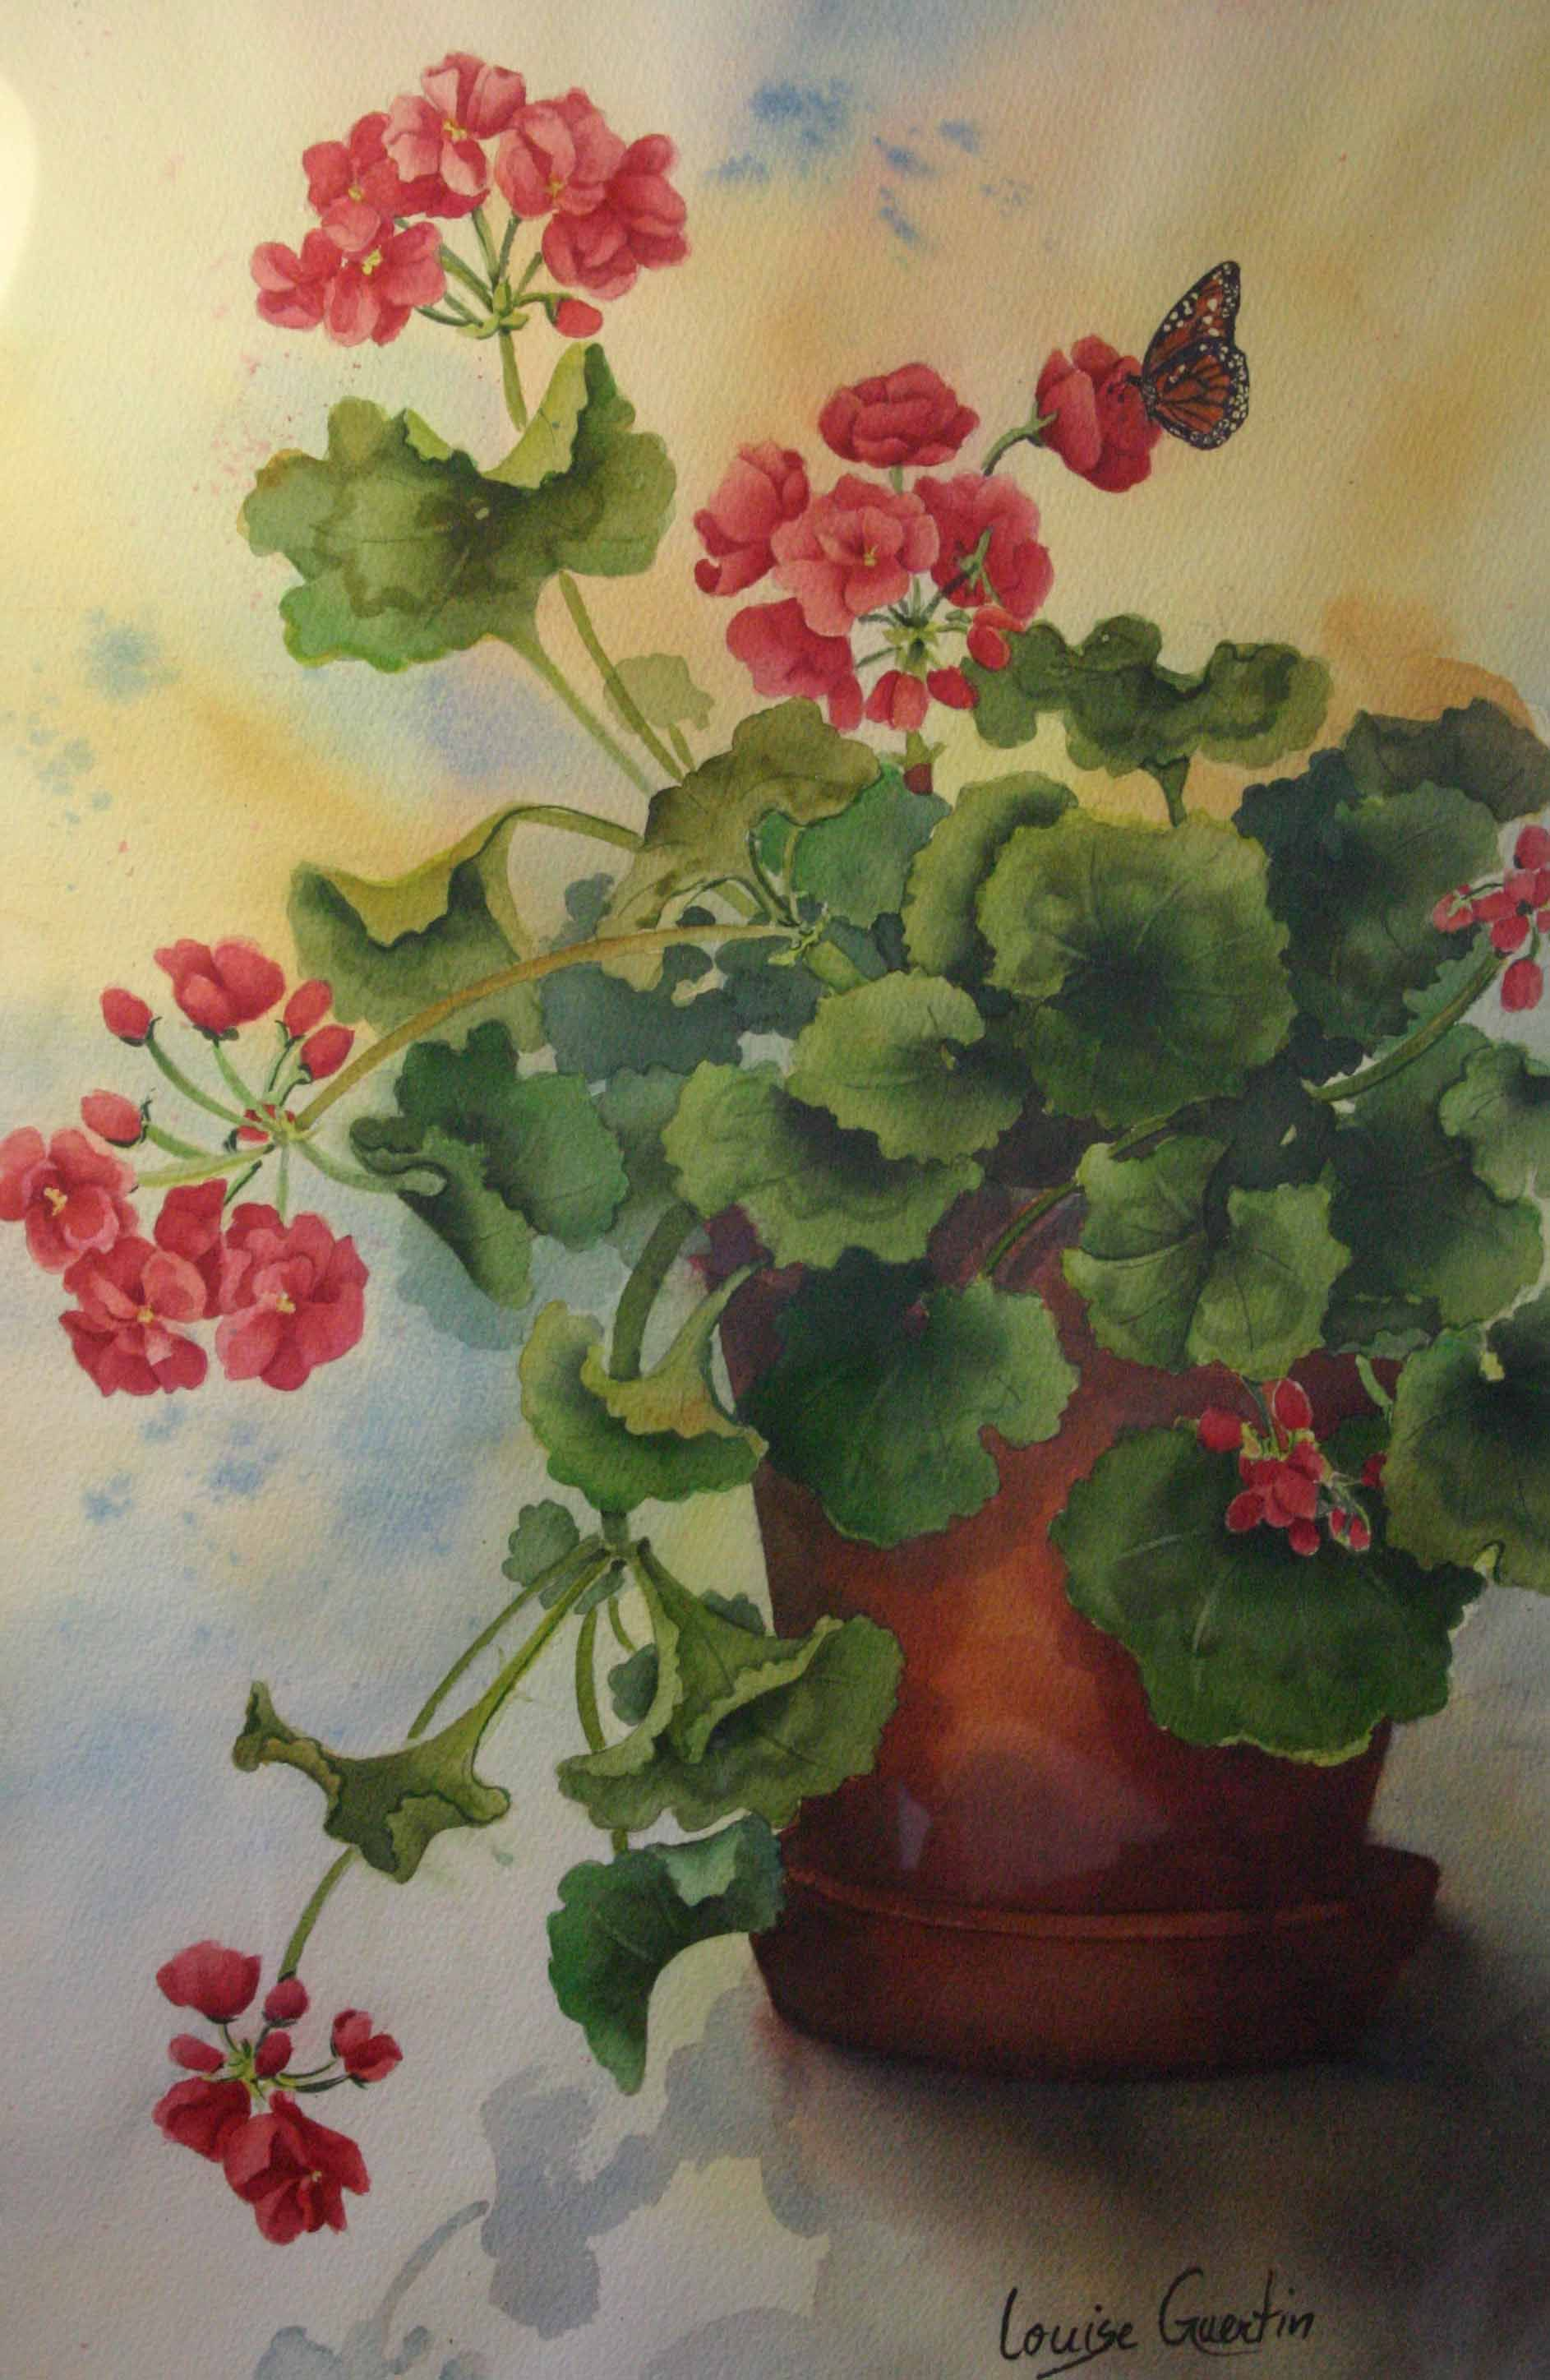 Louise Guertin Gourmandise Watercolor Art Floral Painting